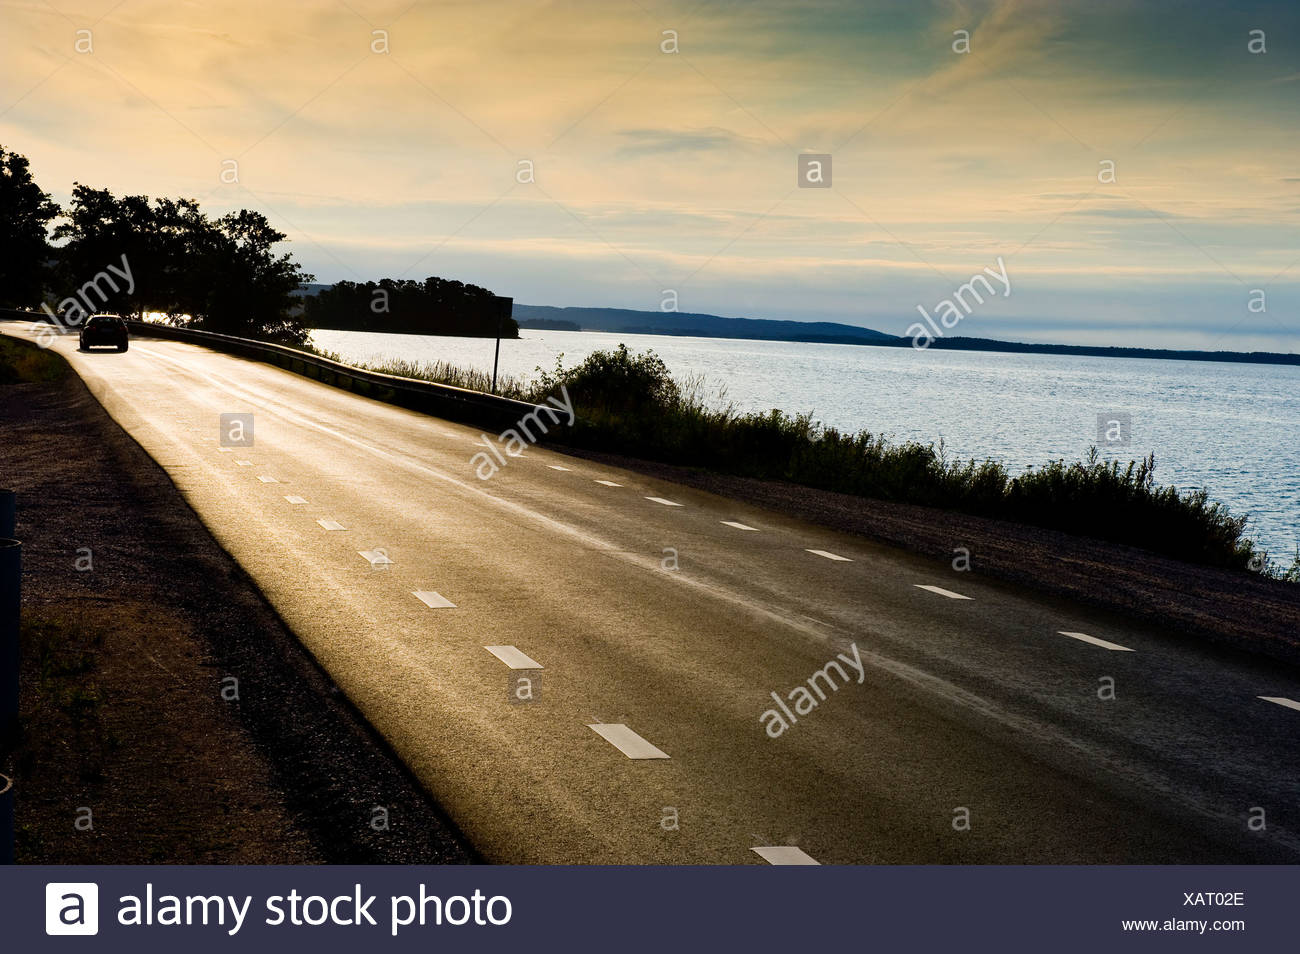 Asphalt road on Bråviken by the sea below cloudy sky at dusk - Stock Image